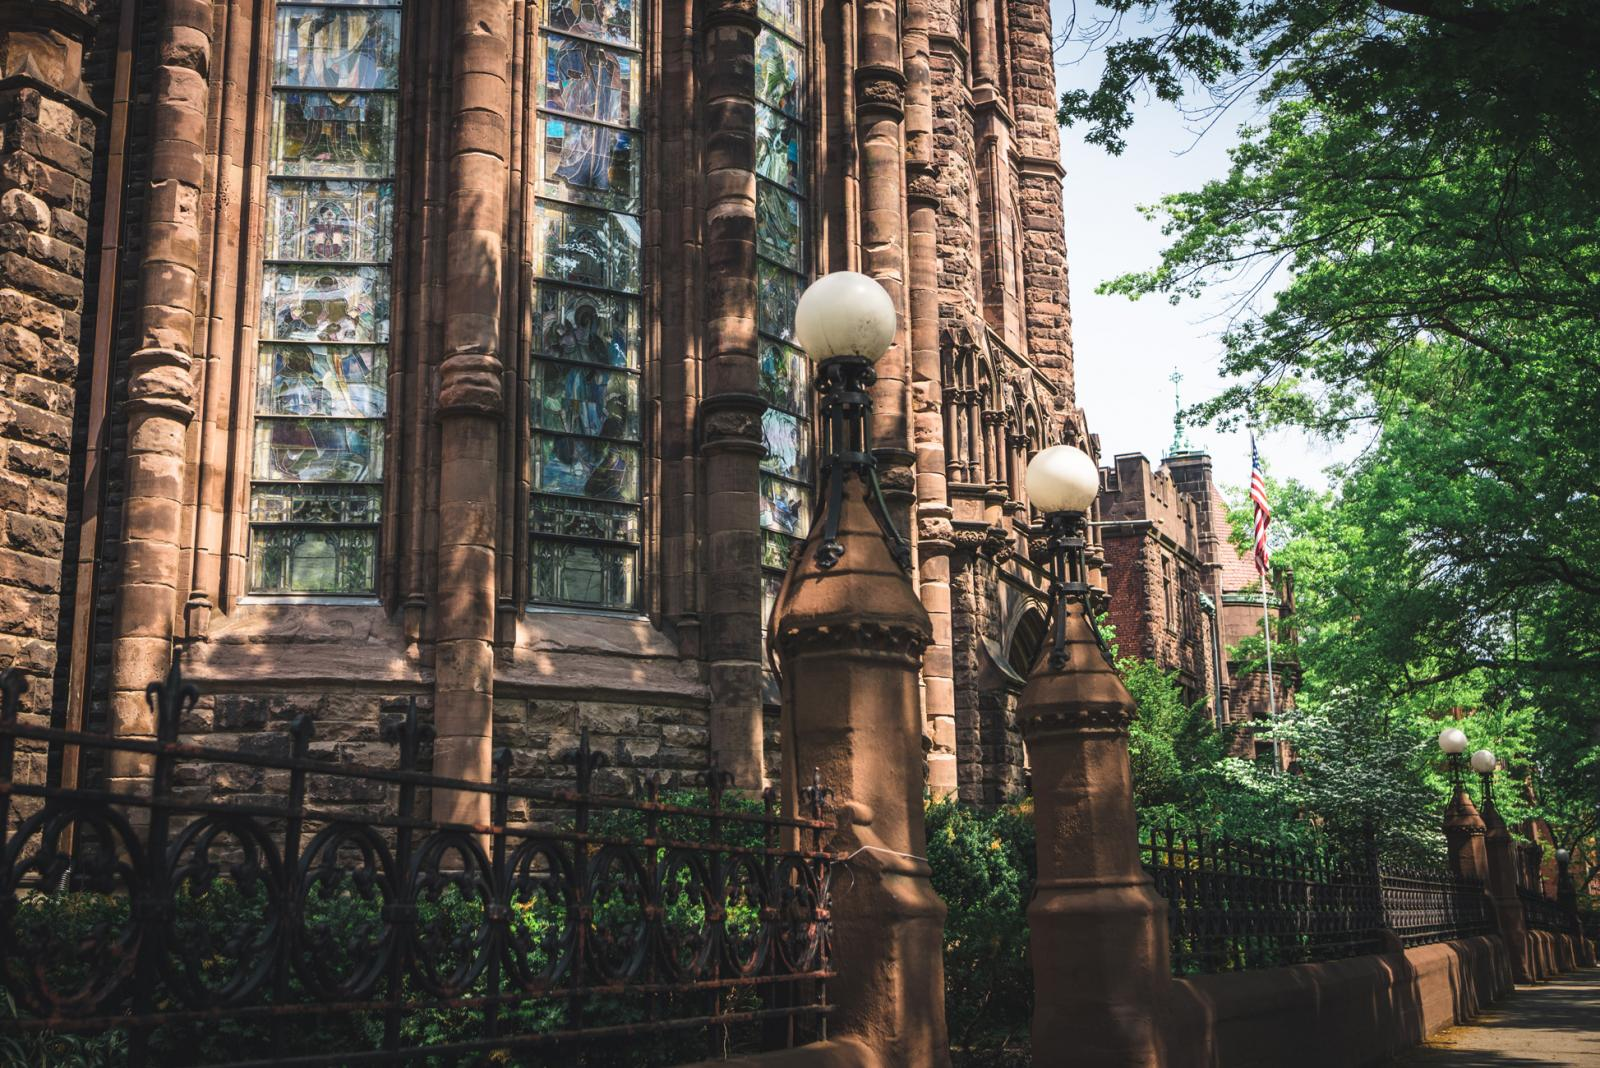 Things To Do In Park Slope